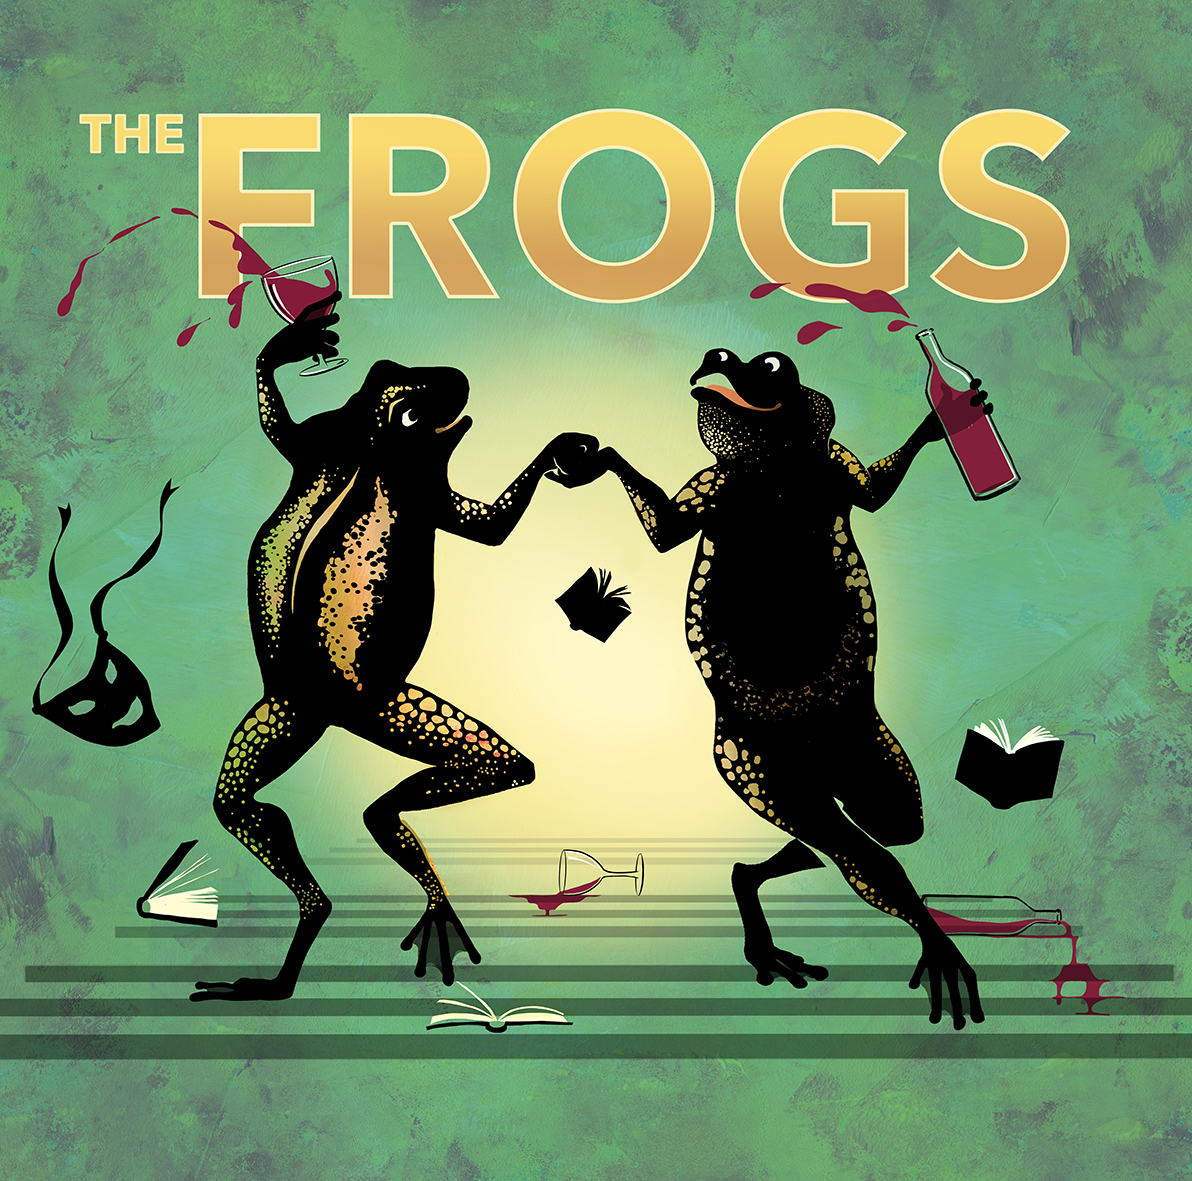 the-frogs-final-image-small